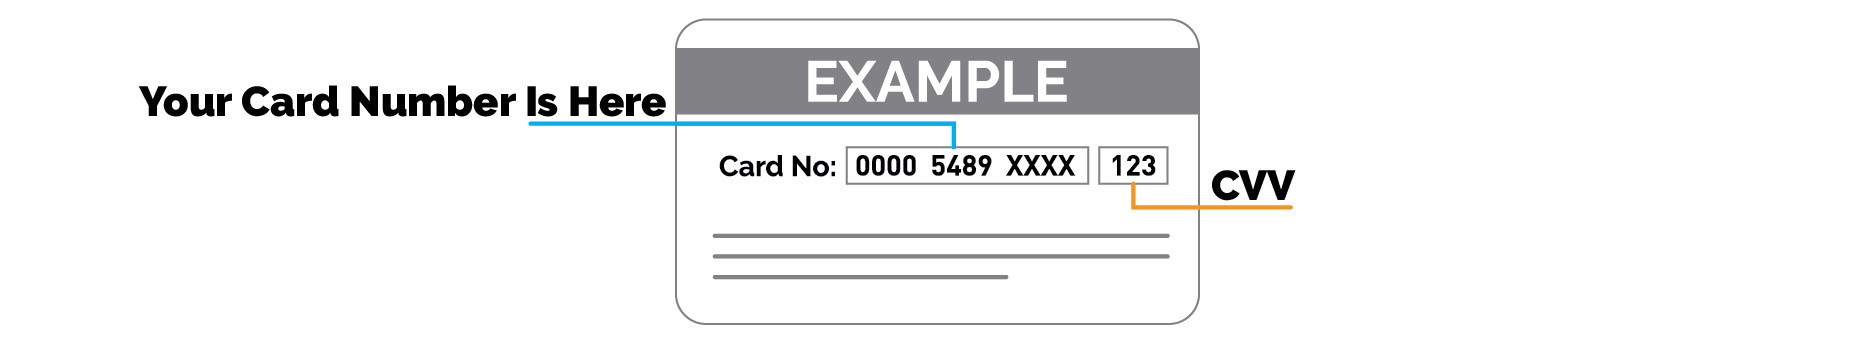 Gift Card Example with Number and CVV